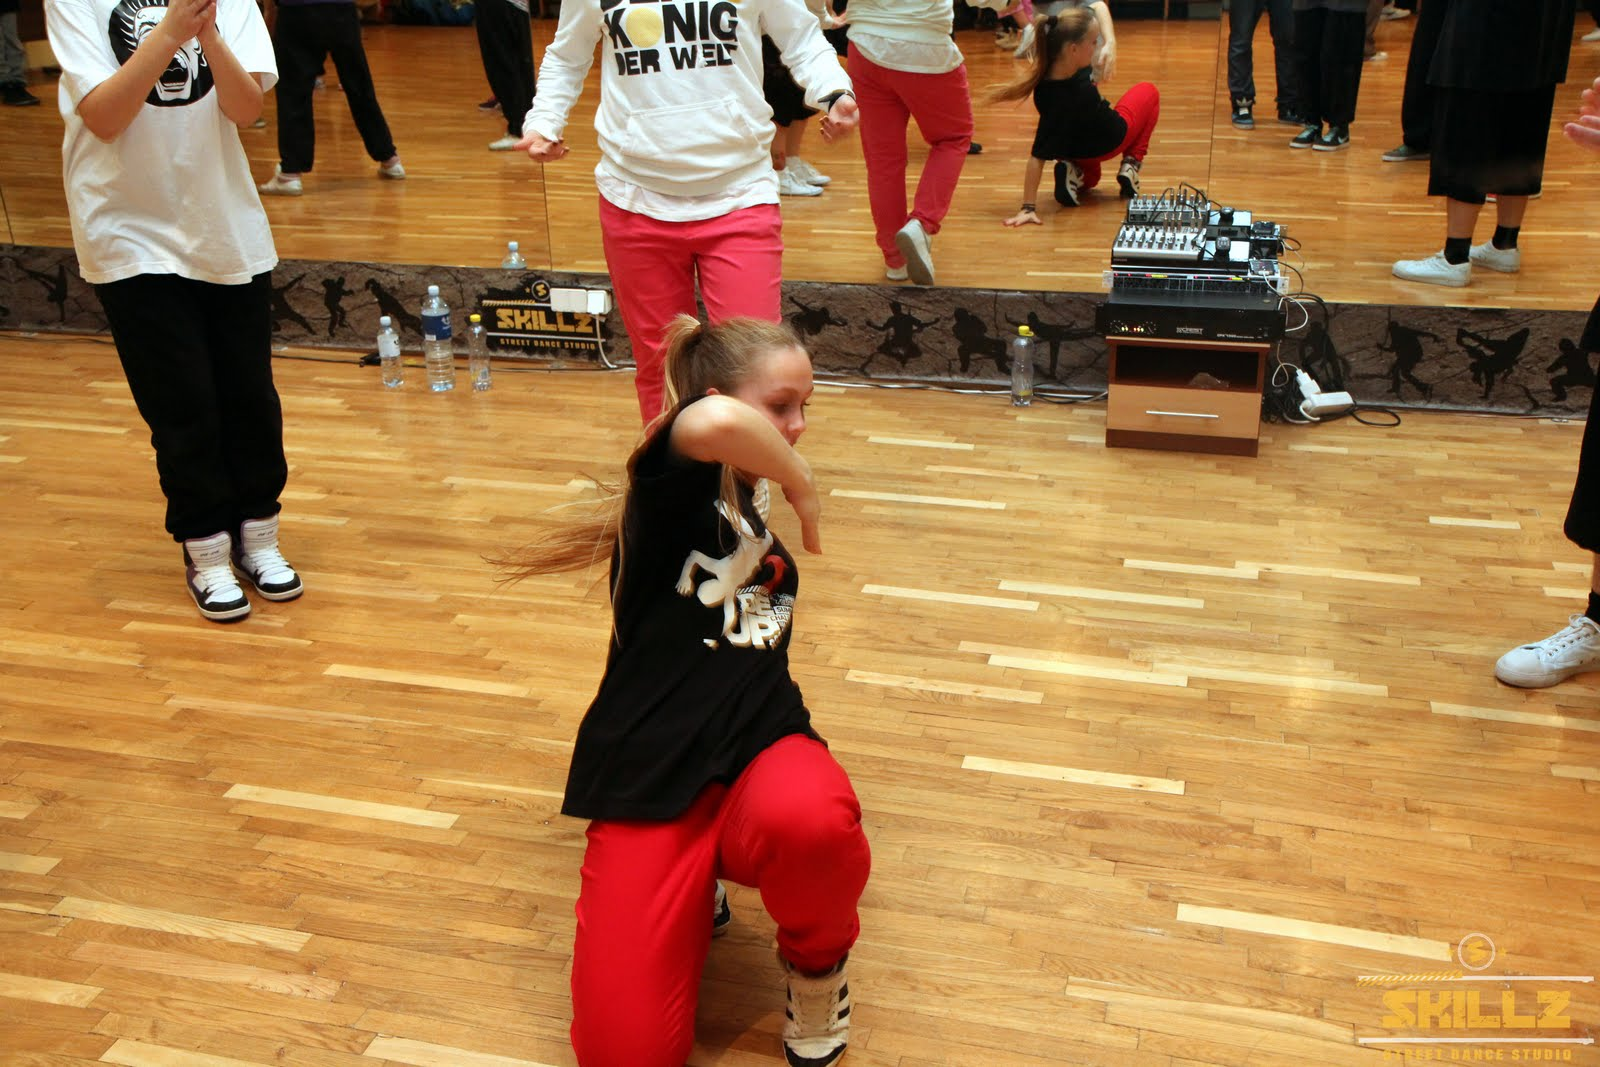 Hip- Hop workshop with Shaadow (UK) - IMG_1839.jpg